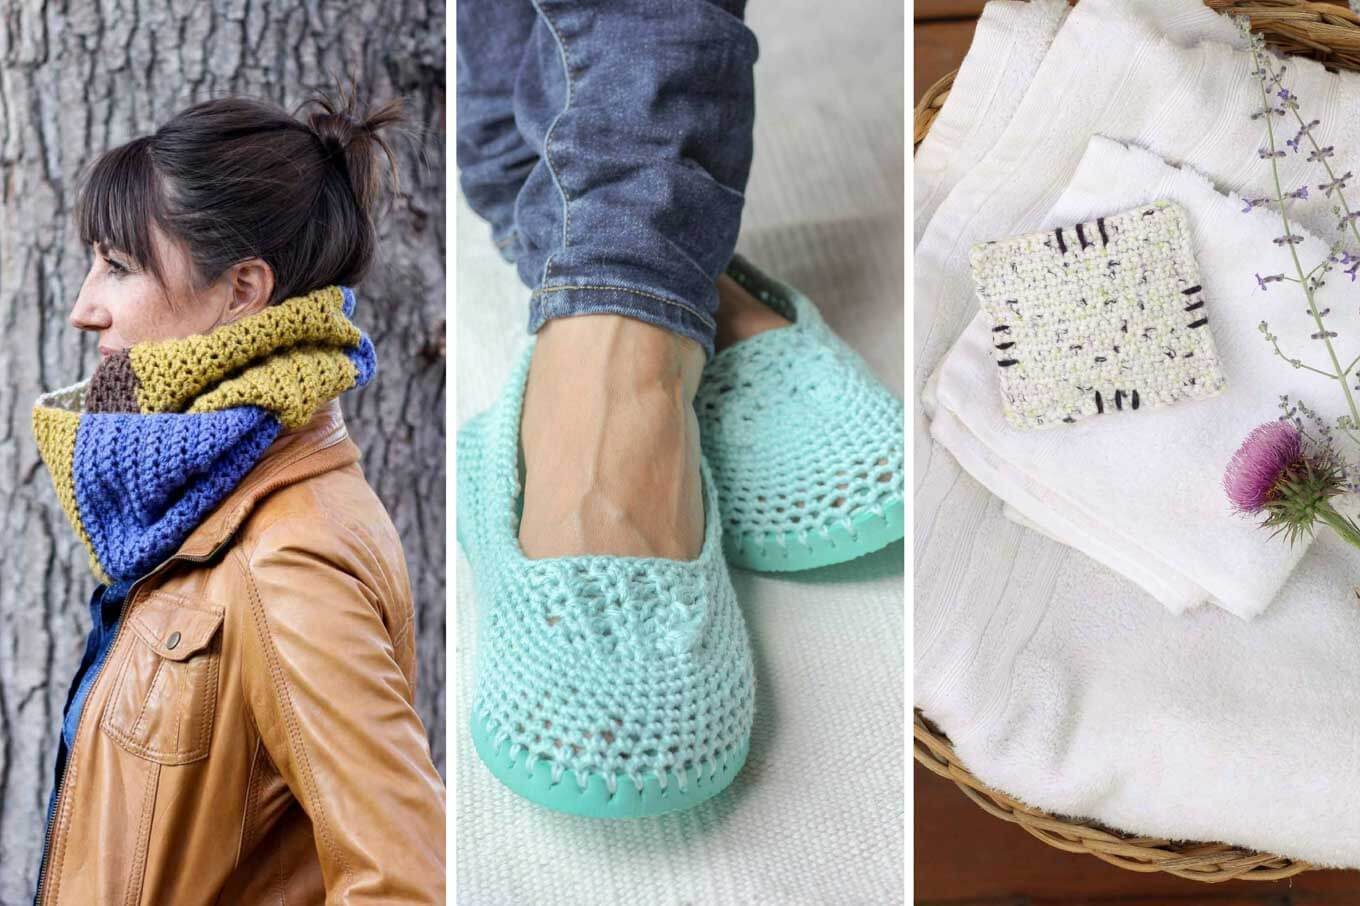 These modern crochet gift ideas can all be make for under $5, which means you can give gifts that are thoughtful, stylish AND inexpensive. Click to view the free patterns.